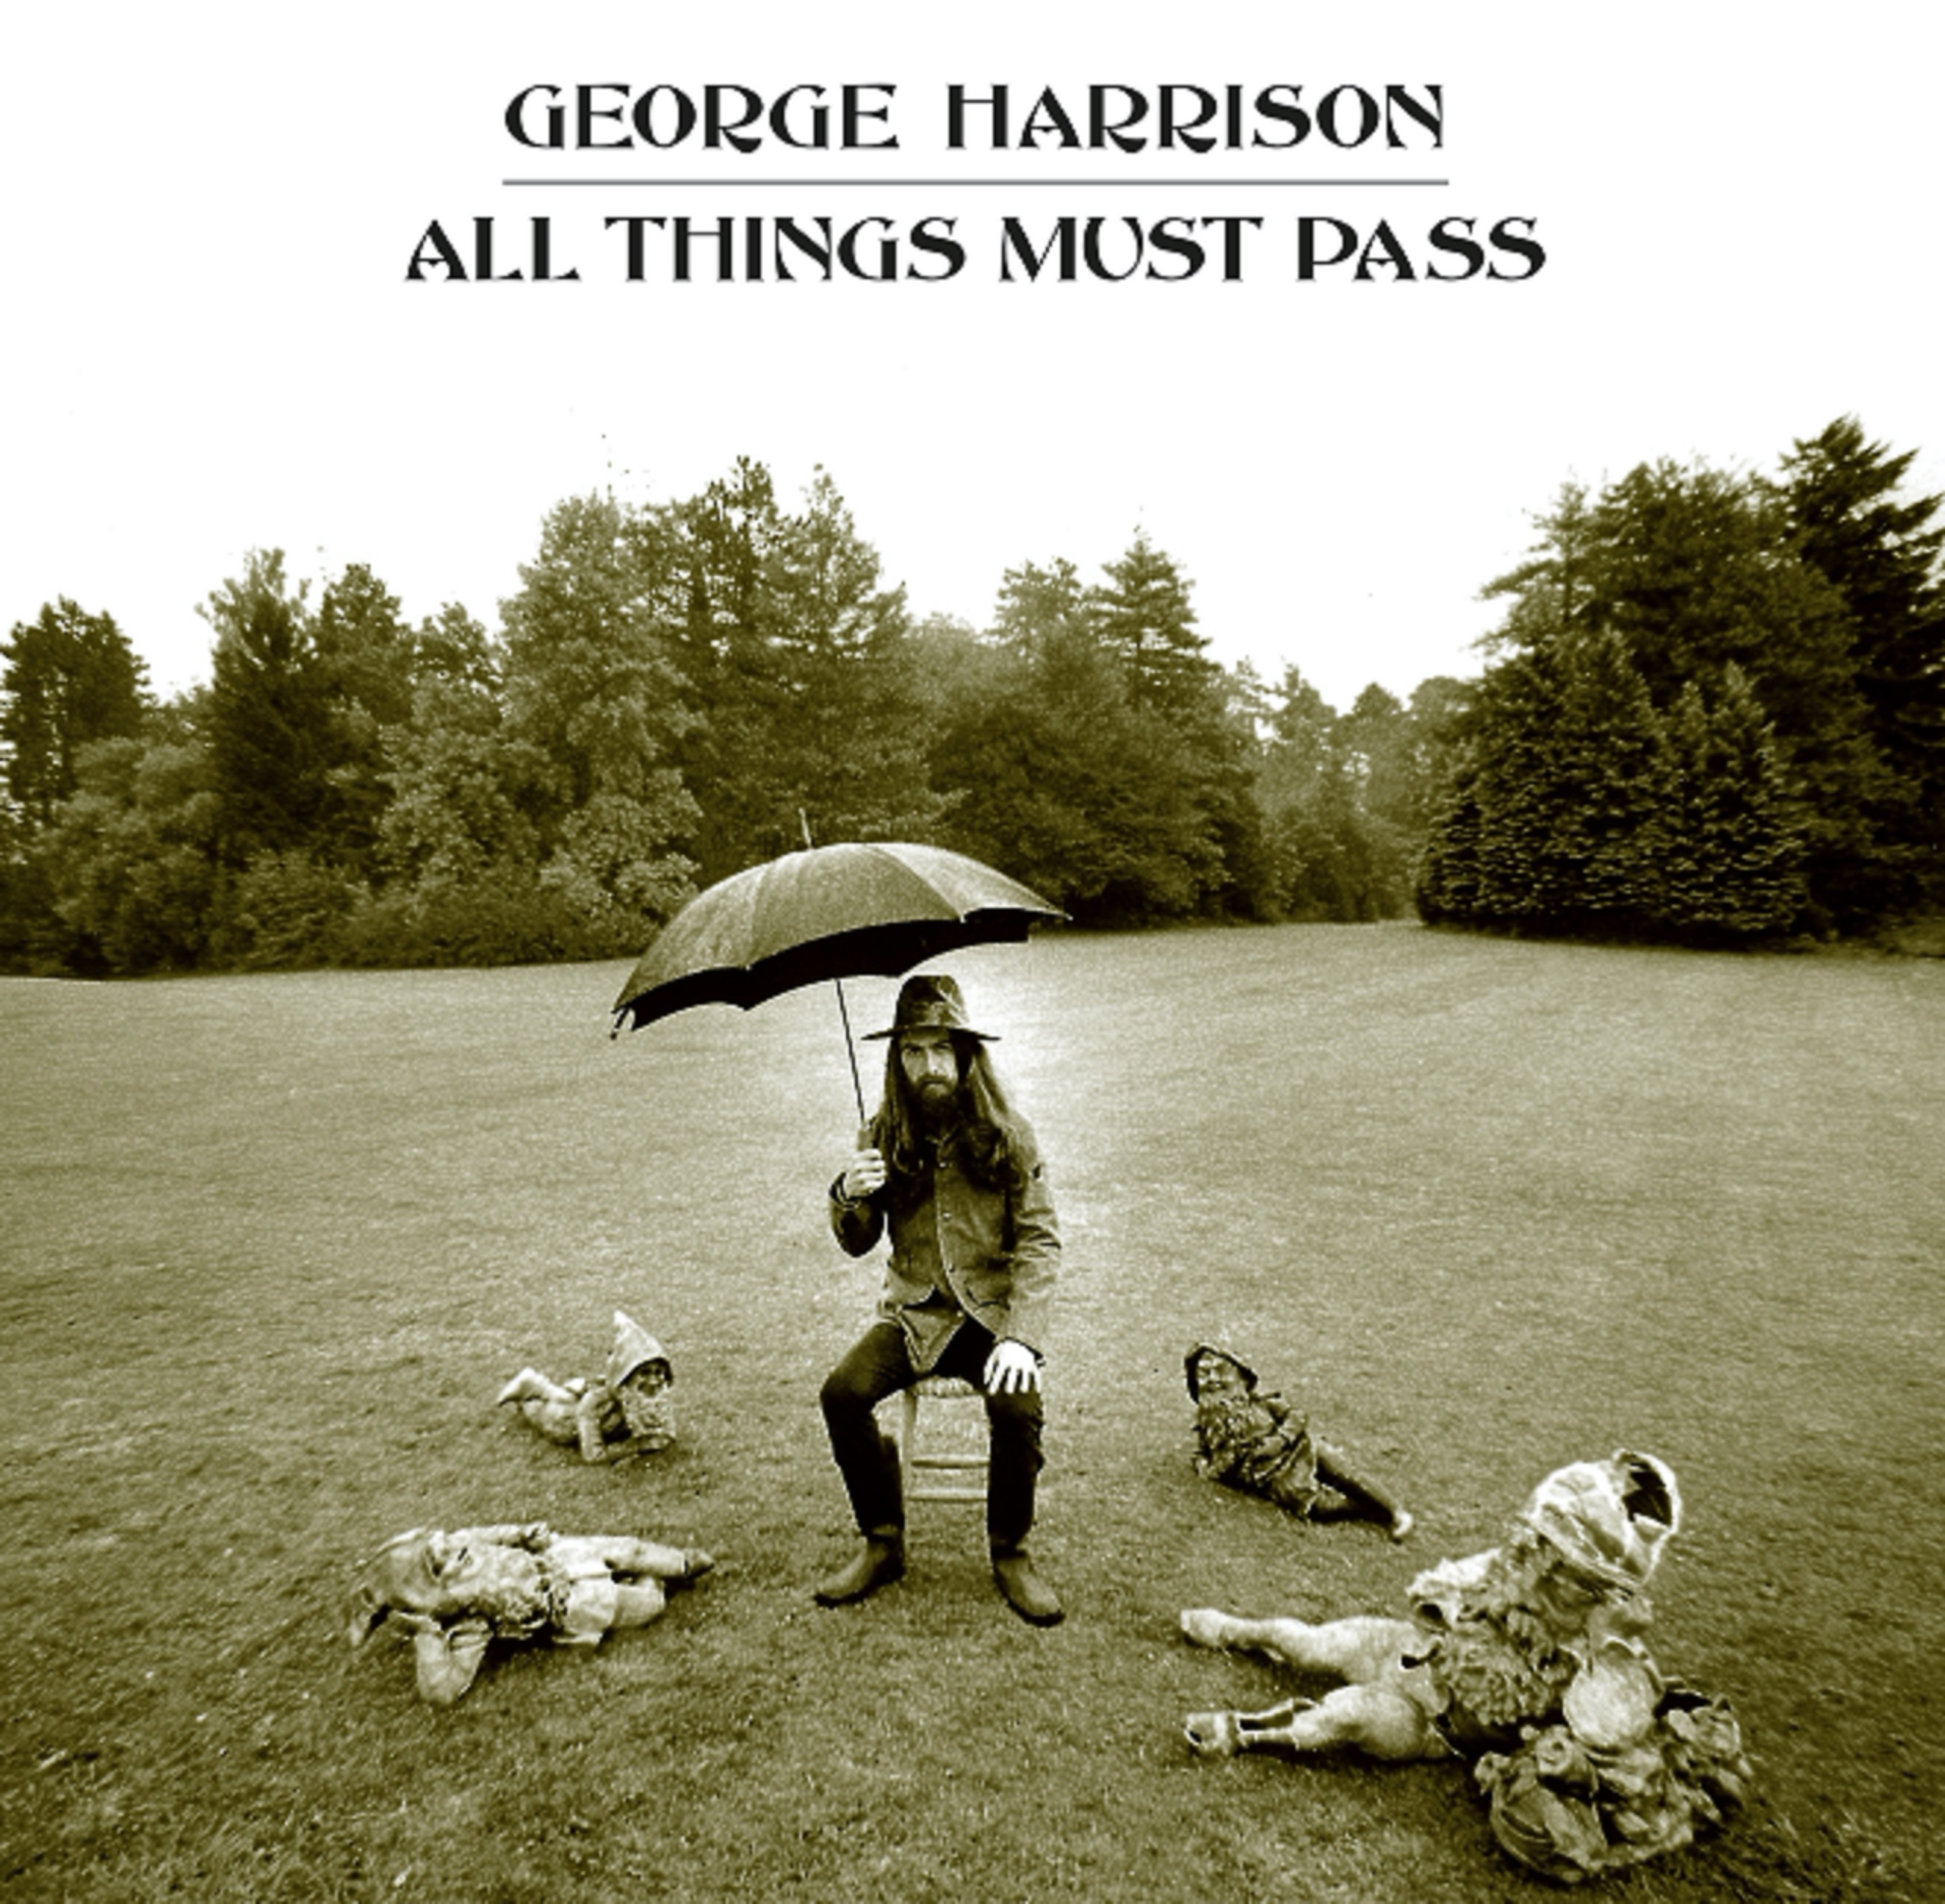 George Harrison's seminal 1970 album 'All Things Must Pass' celebrated with new stereo mix of legendary title track on 50th anniversary